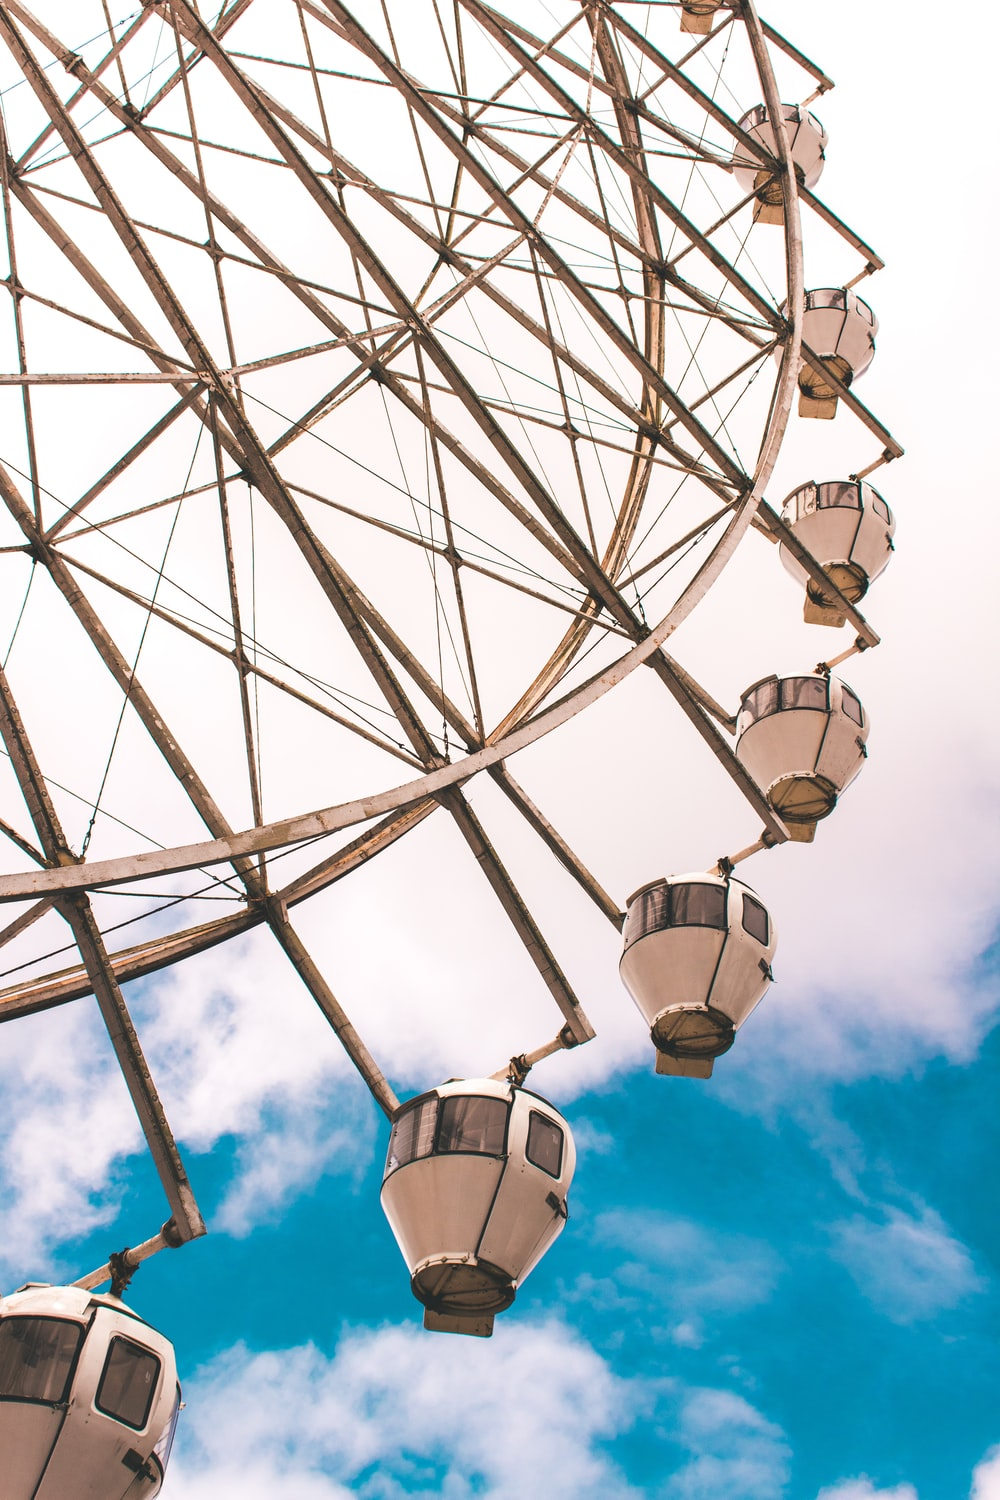 wormseye view of ferriswheel under blue sky